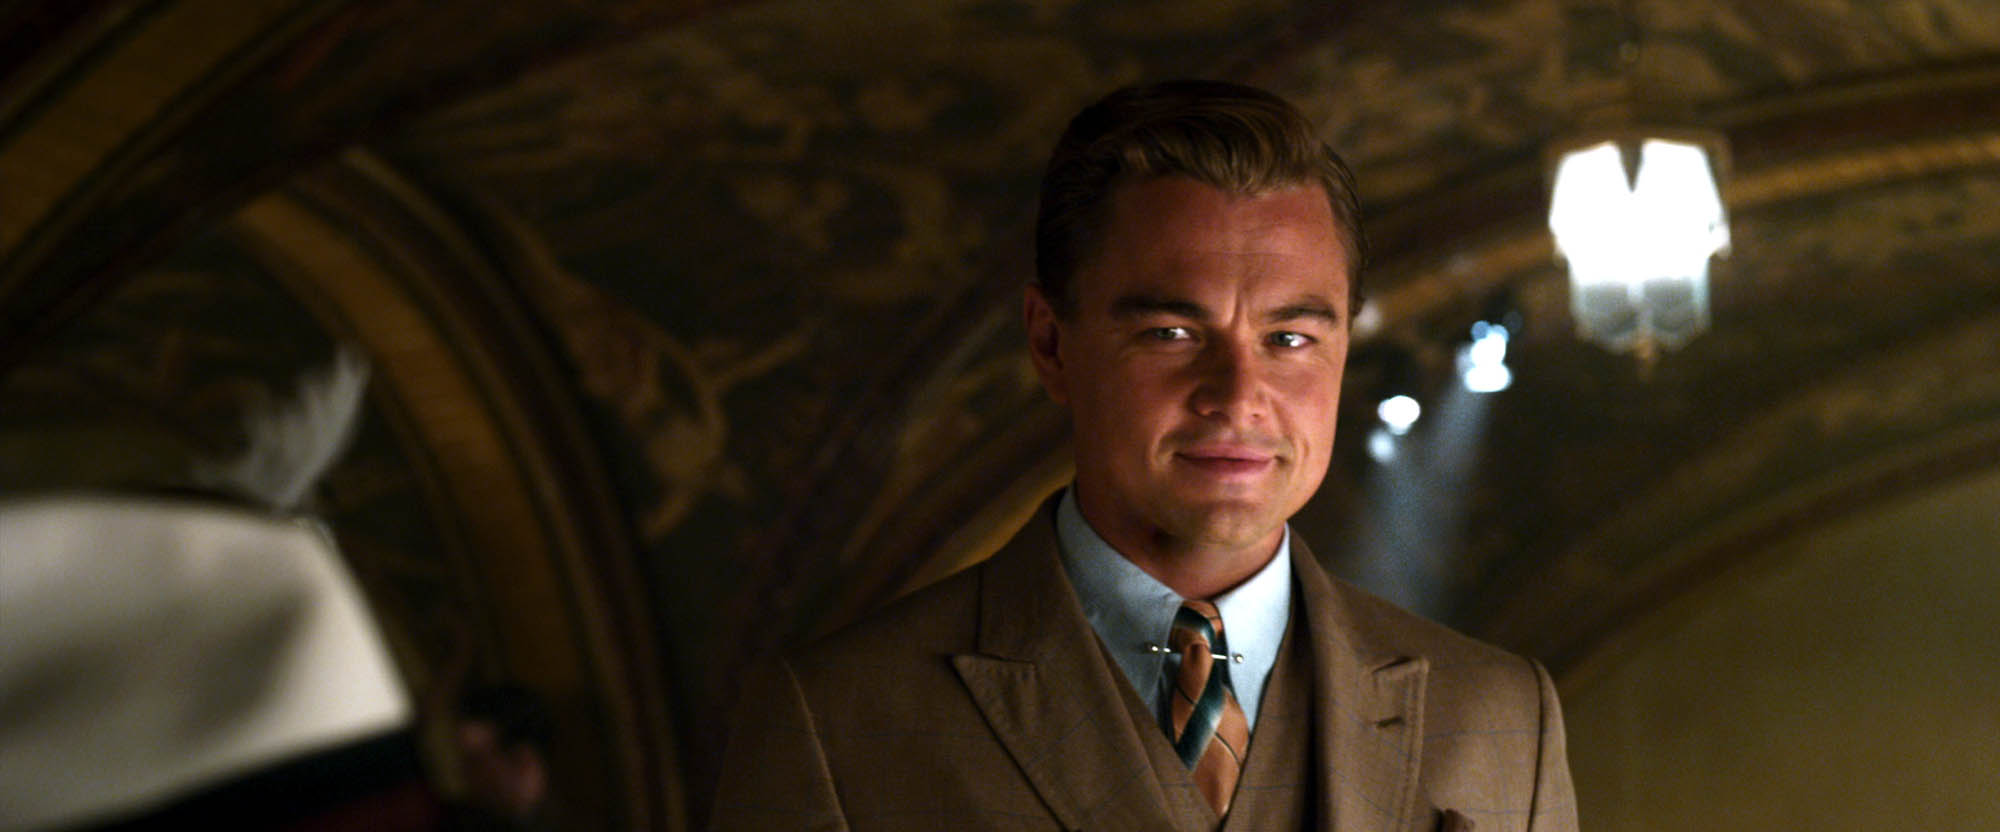 great gatsby and the reader Get an answer for 'why does the great gatsby leave the reader with a sense of disillusionment' and find homework help for other the great gatsby questions at enotes.